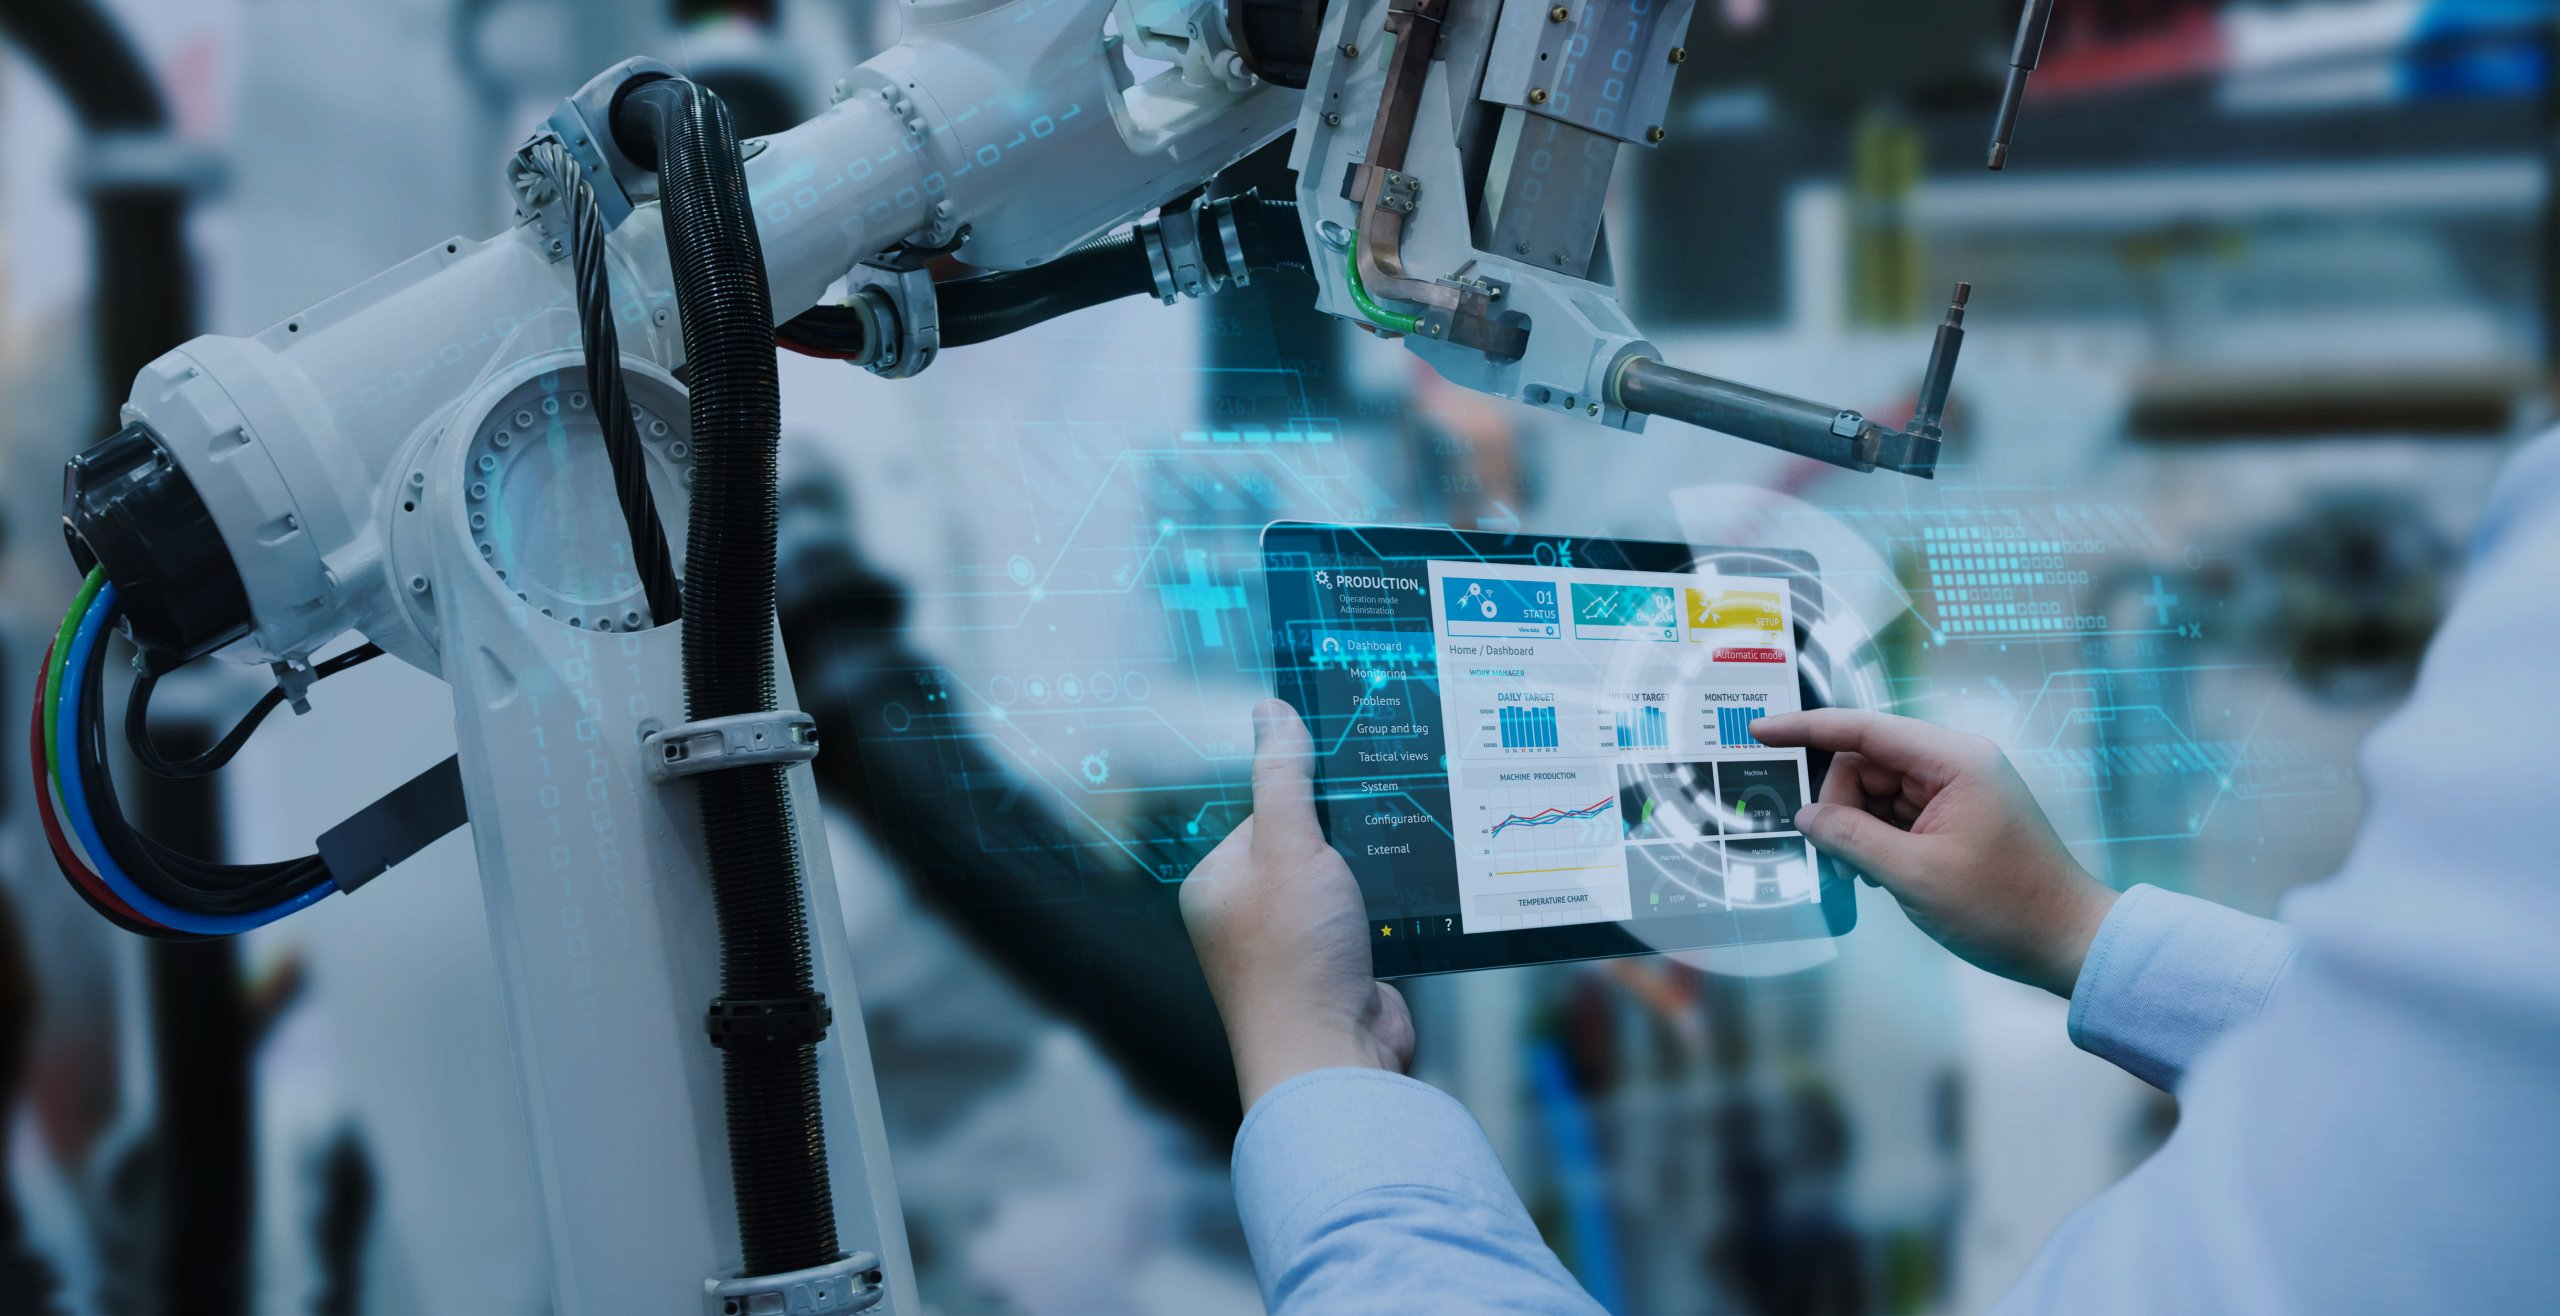 Cybersecurity in the manufacturing industry